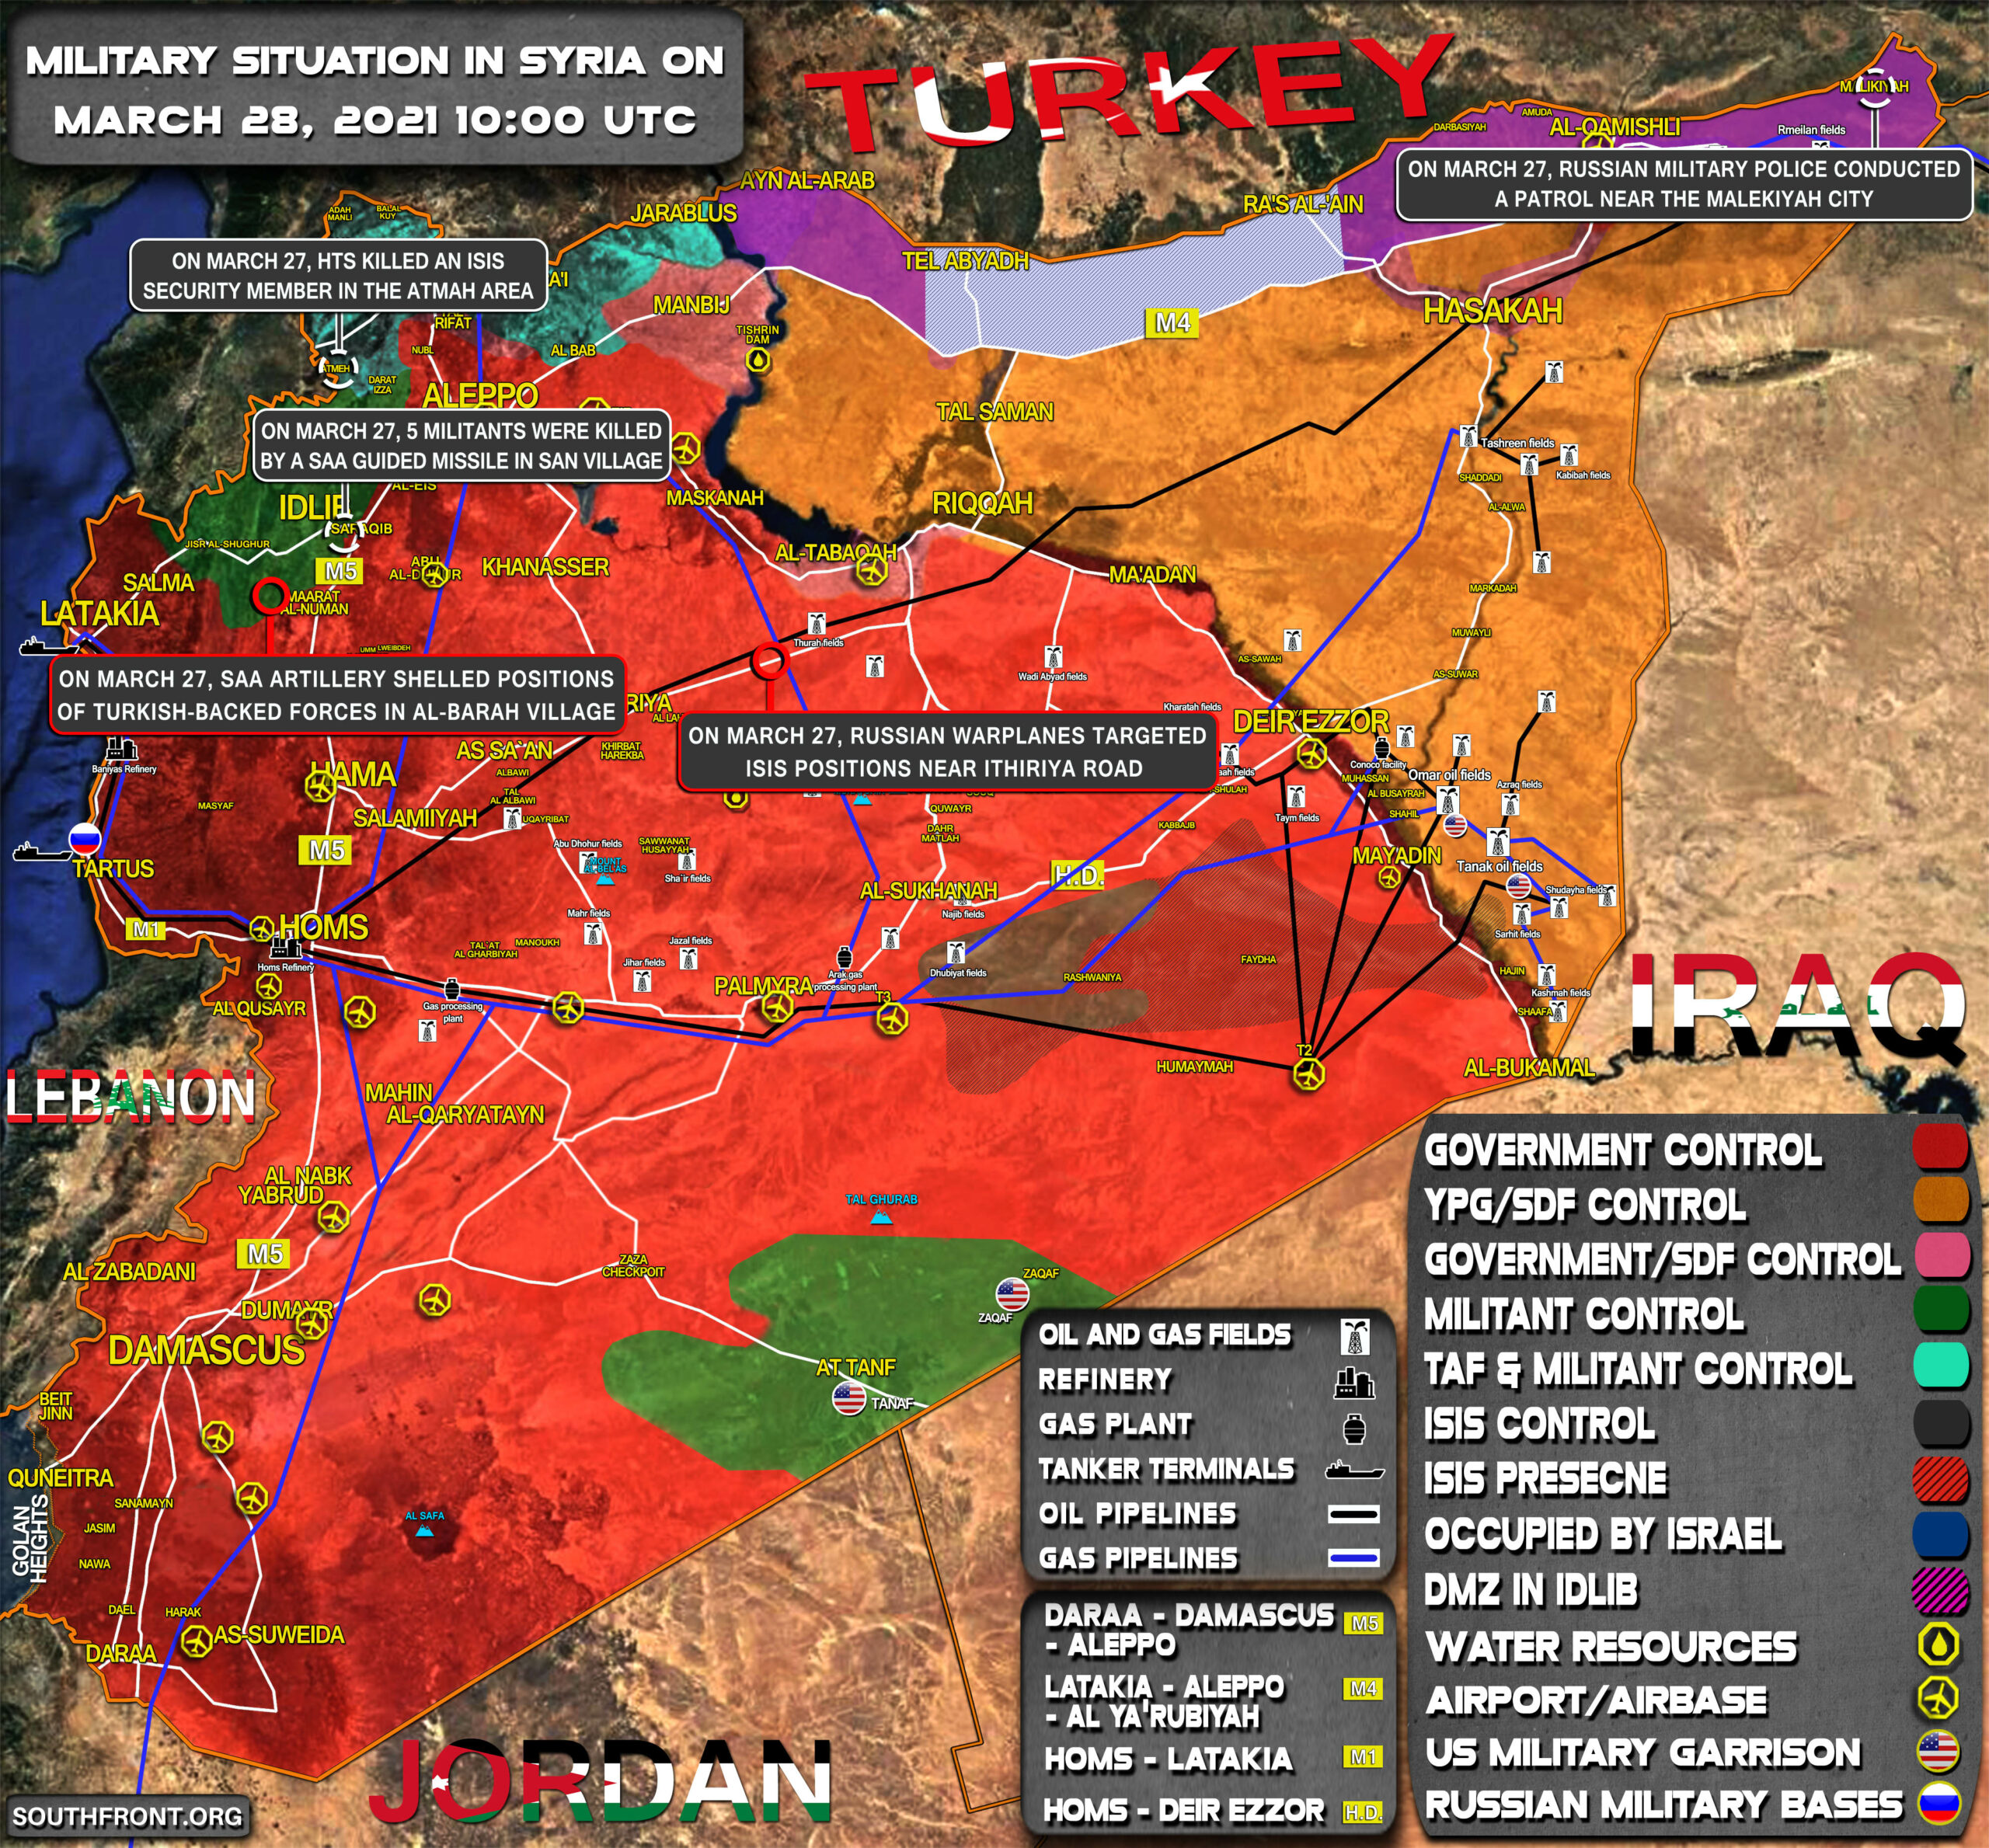 Military Situation In Syria On March 28, 2021 (Map Update)